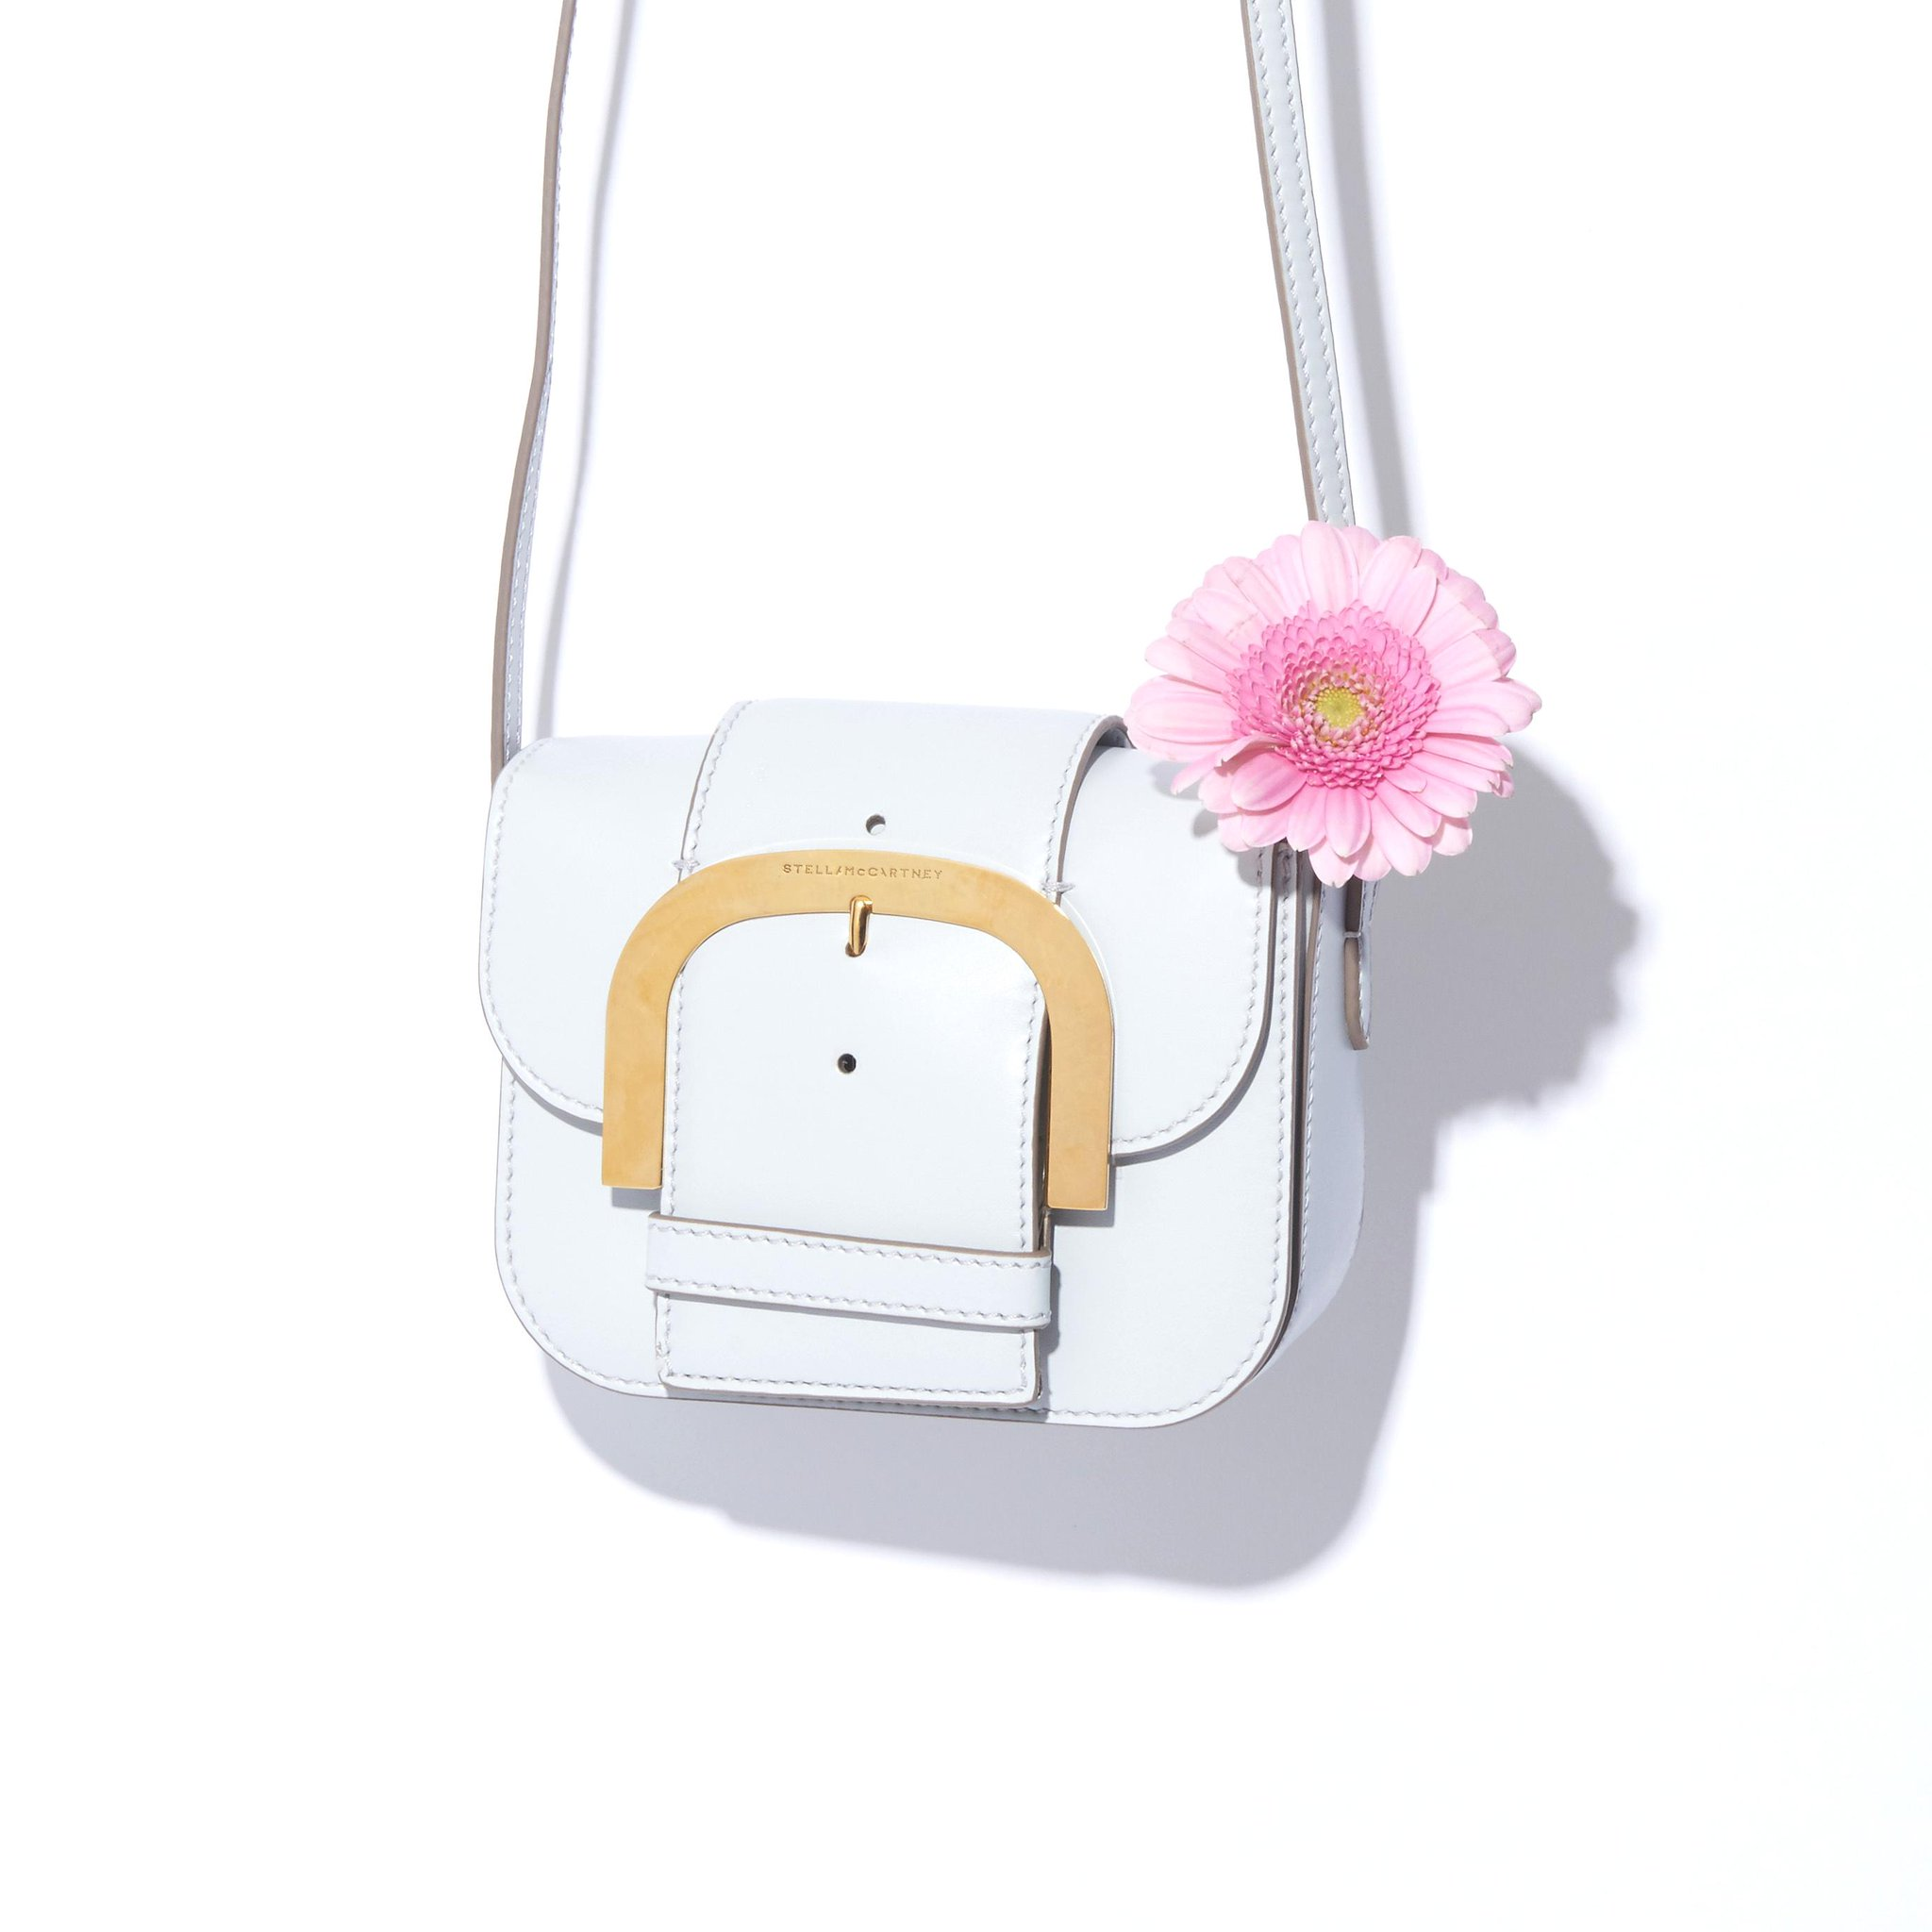 RT @MATCHESFASHION: Buckle up. It's the @StellaMcCartney Ciel: http://t.co/AkVja3OLSR http://t.co/rTS4vBkjKe